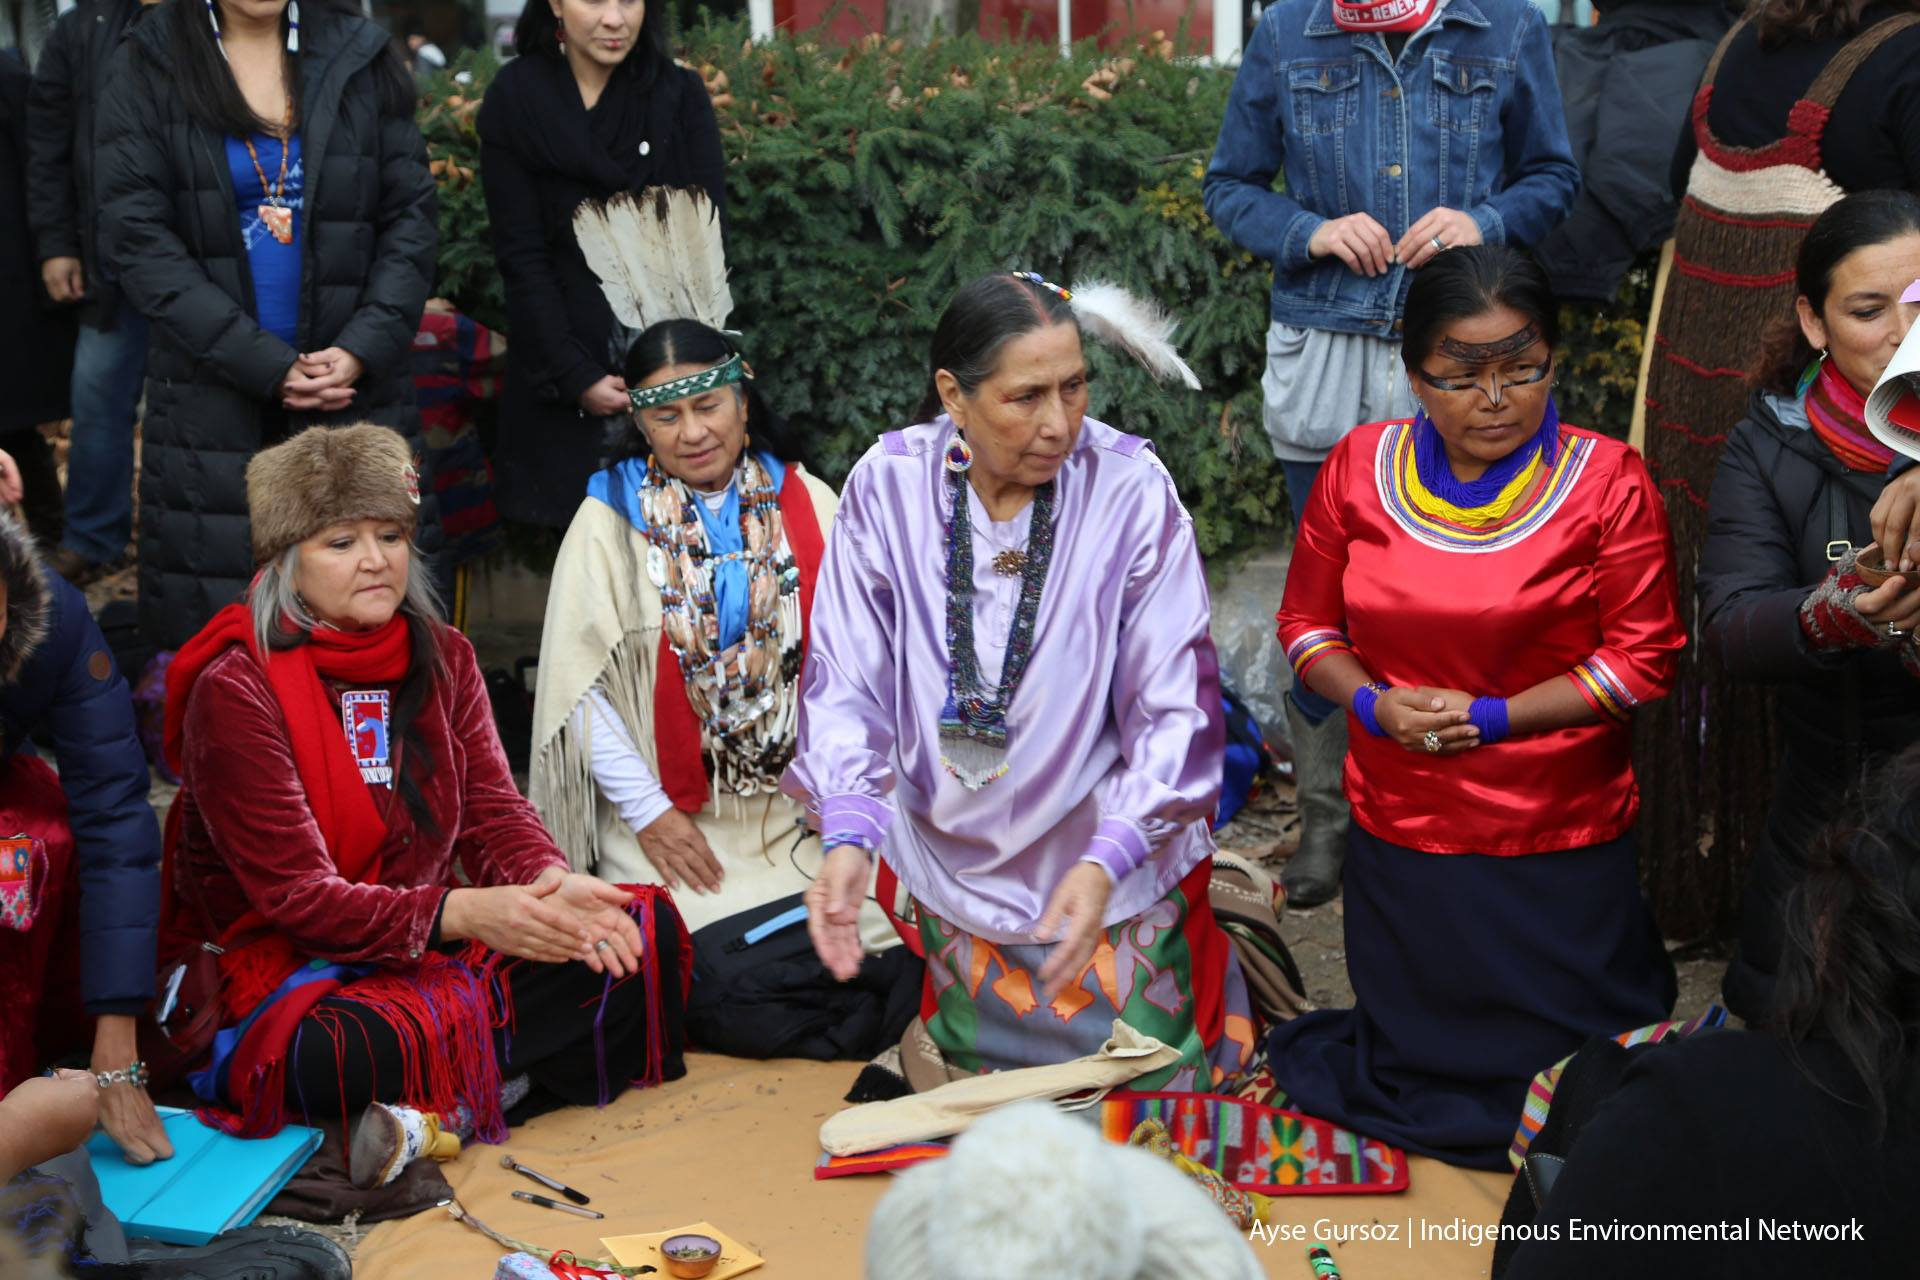 Native Sun News: Native activists meet for climate talks in France